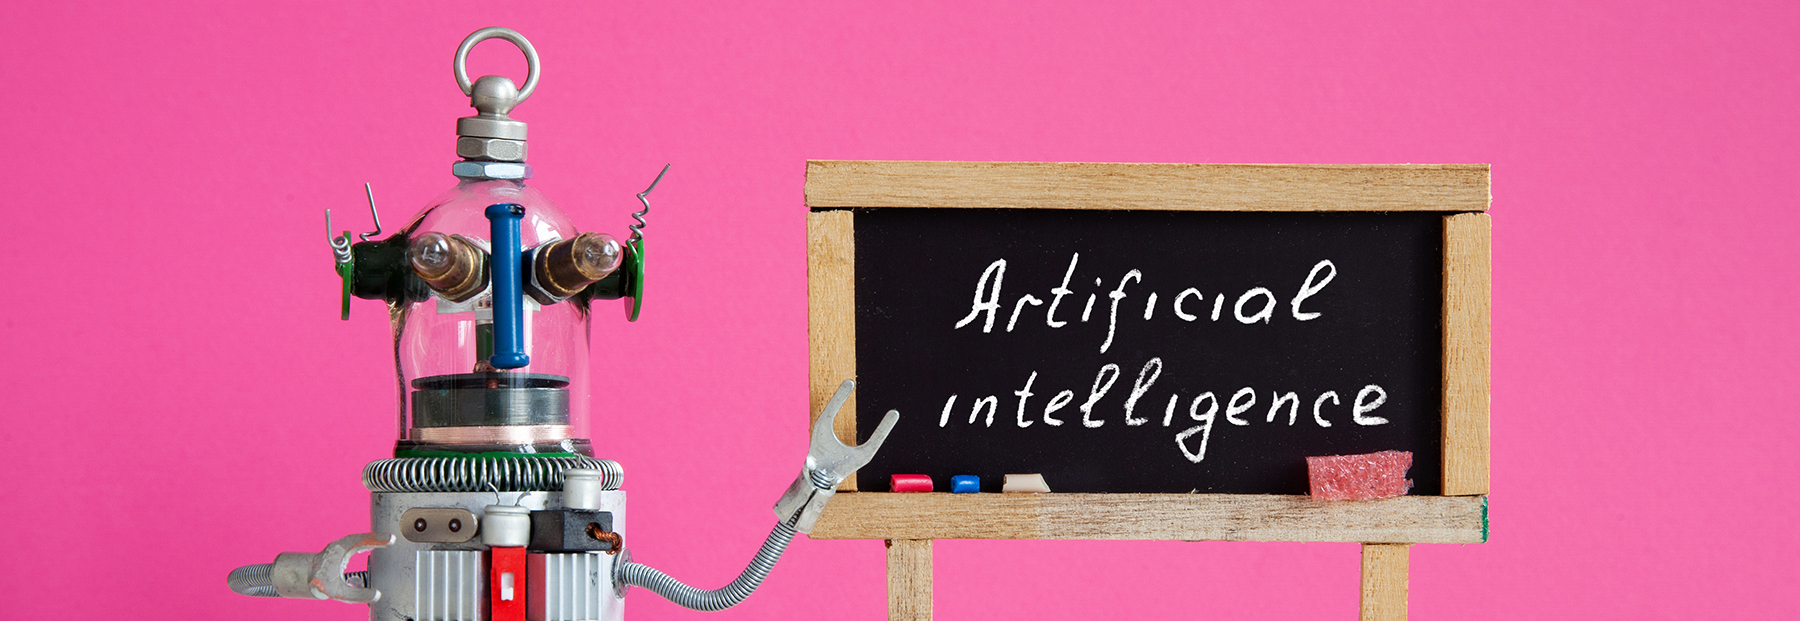 4 Ways Artificial Intelligence Will Positively Impact Your Brand